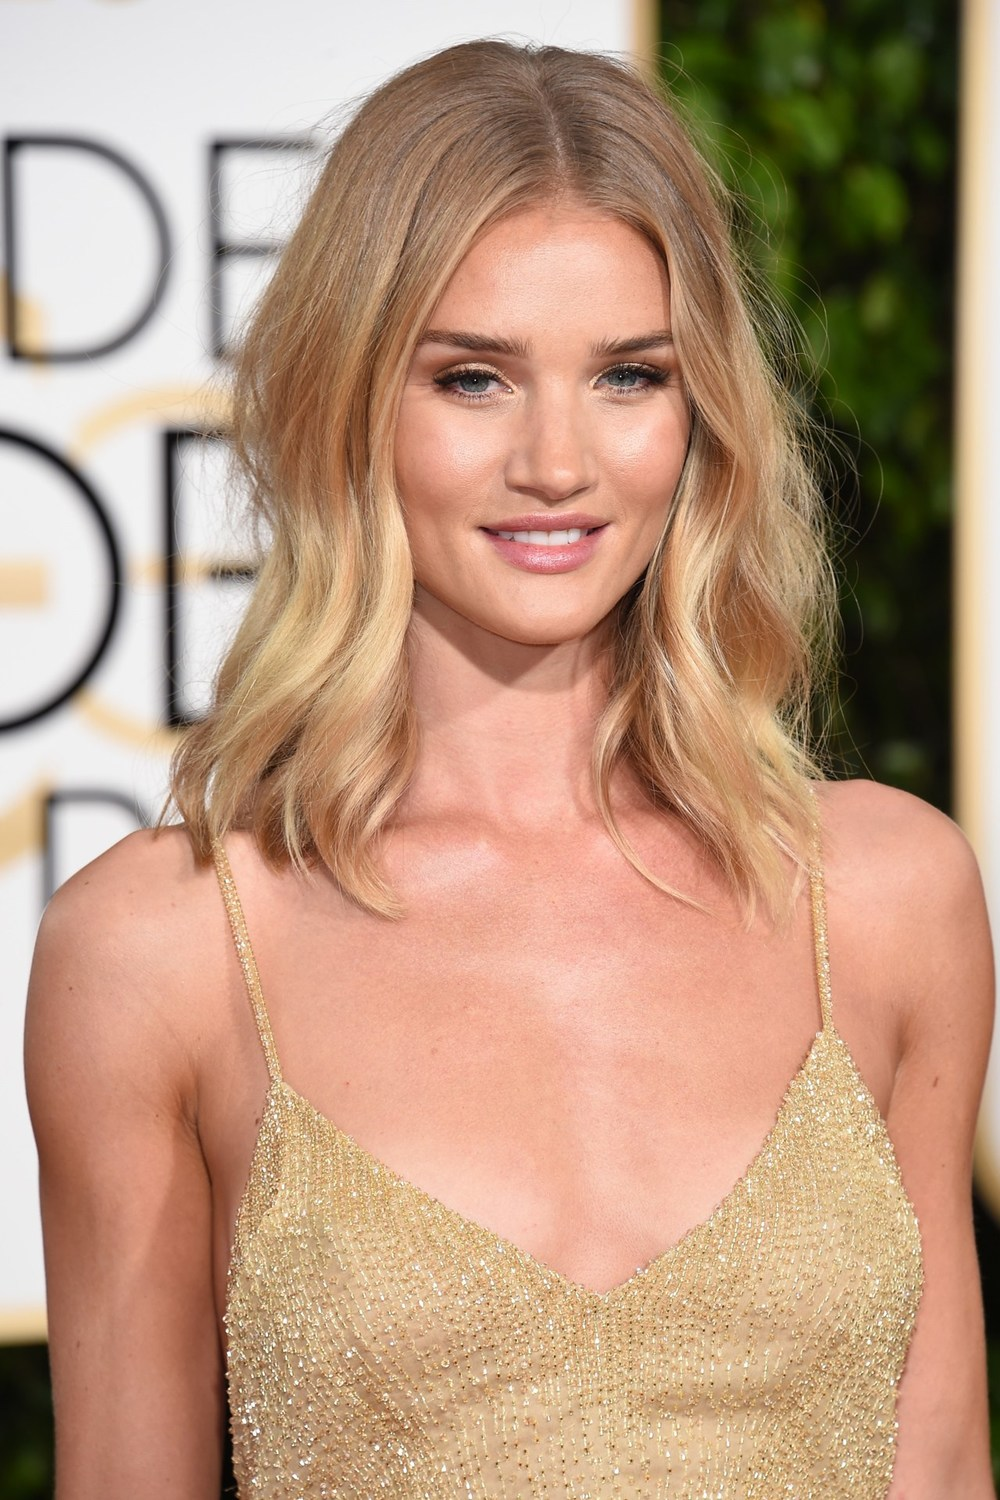 Tousled waves and warm-toned make-up were the key components of the beautiful Rosie Huntington-Whiteley's red-carpet beauty.